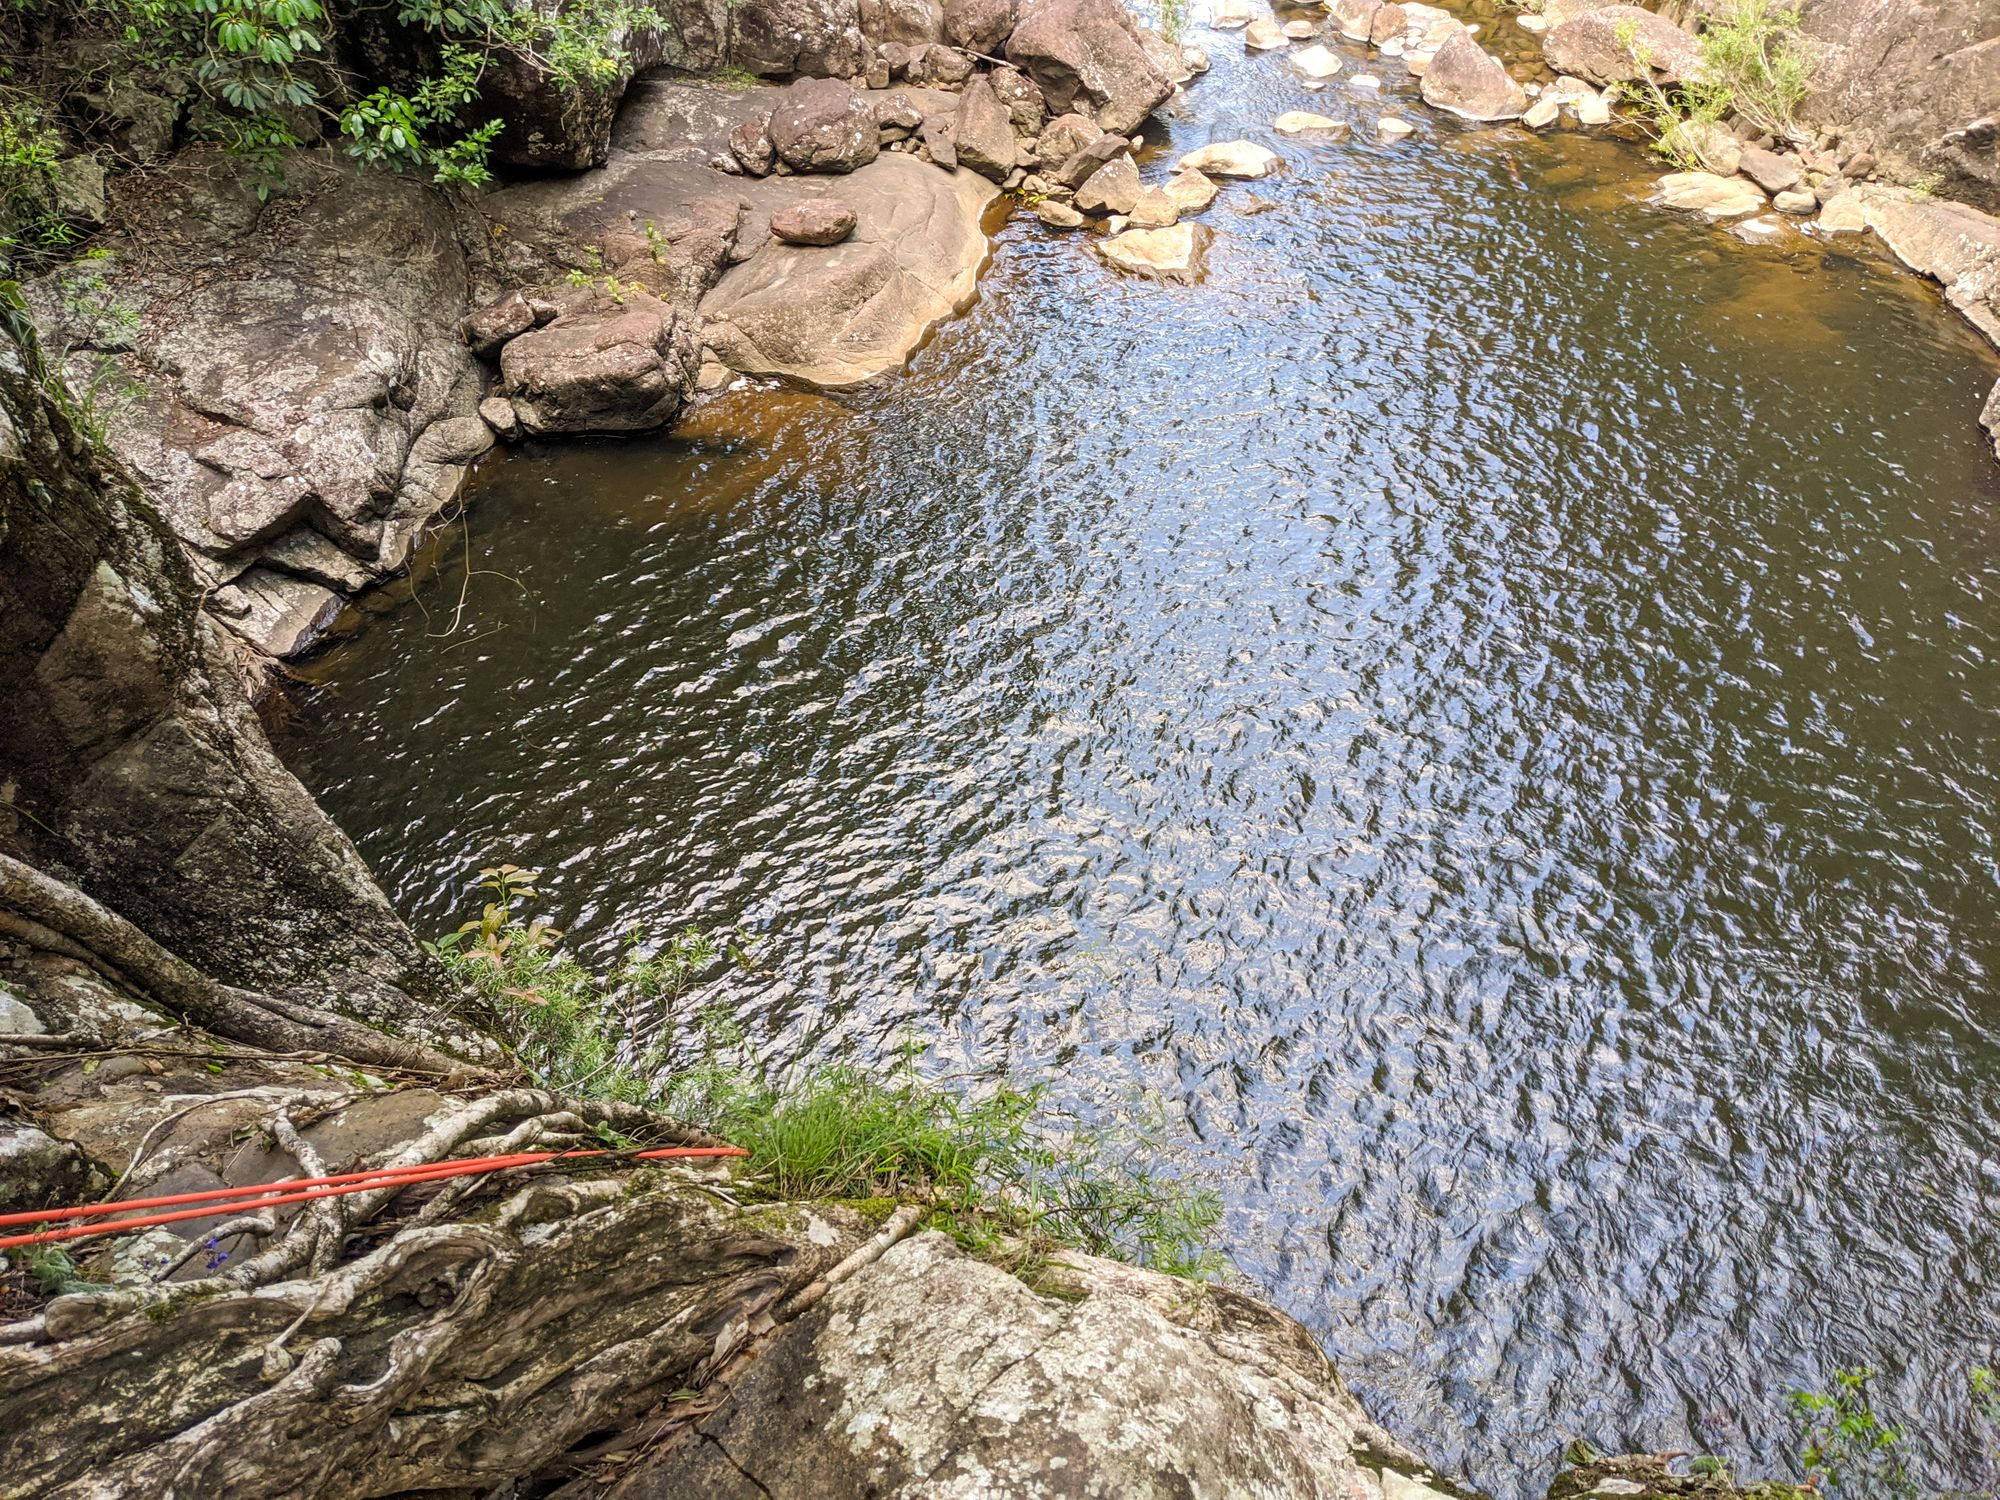 Tinkle Creek rappel 8 pool